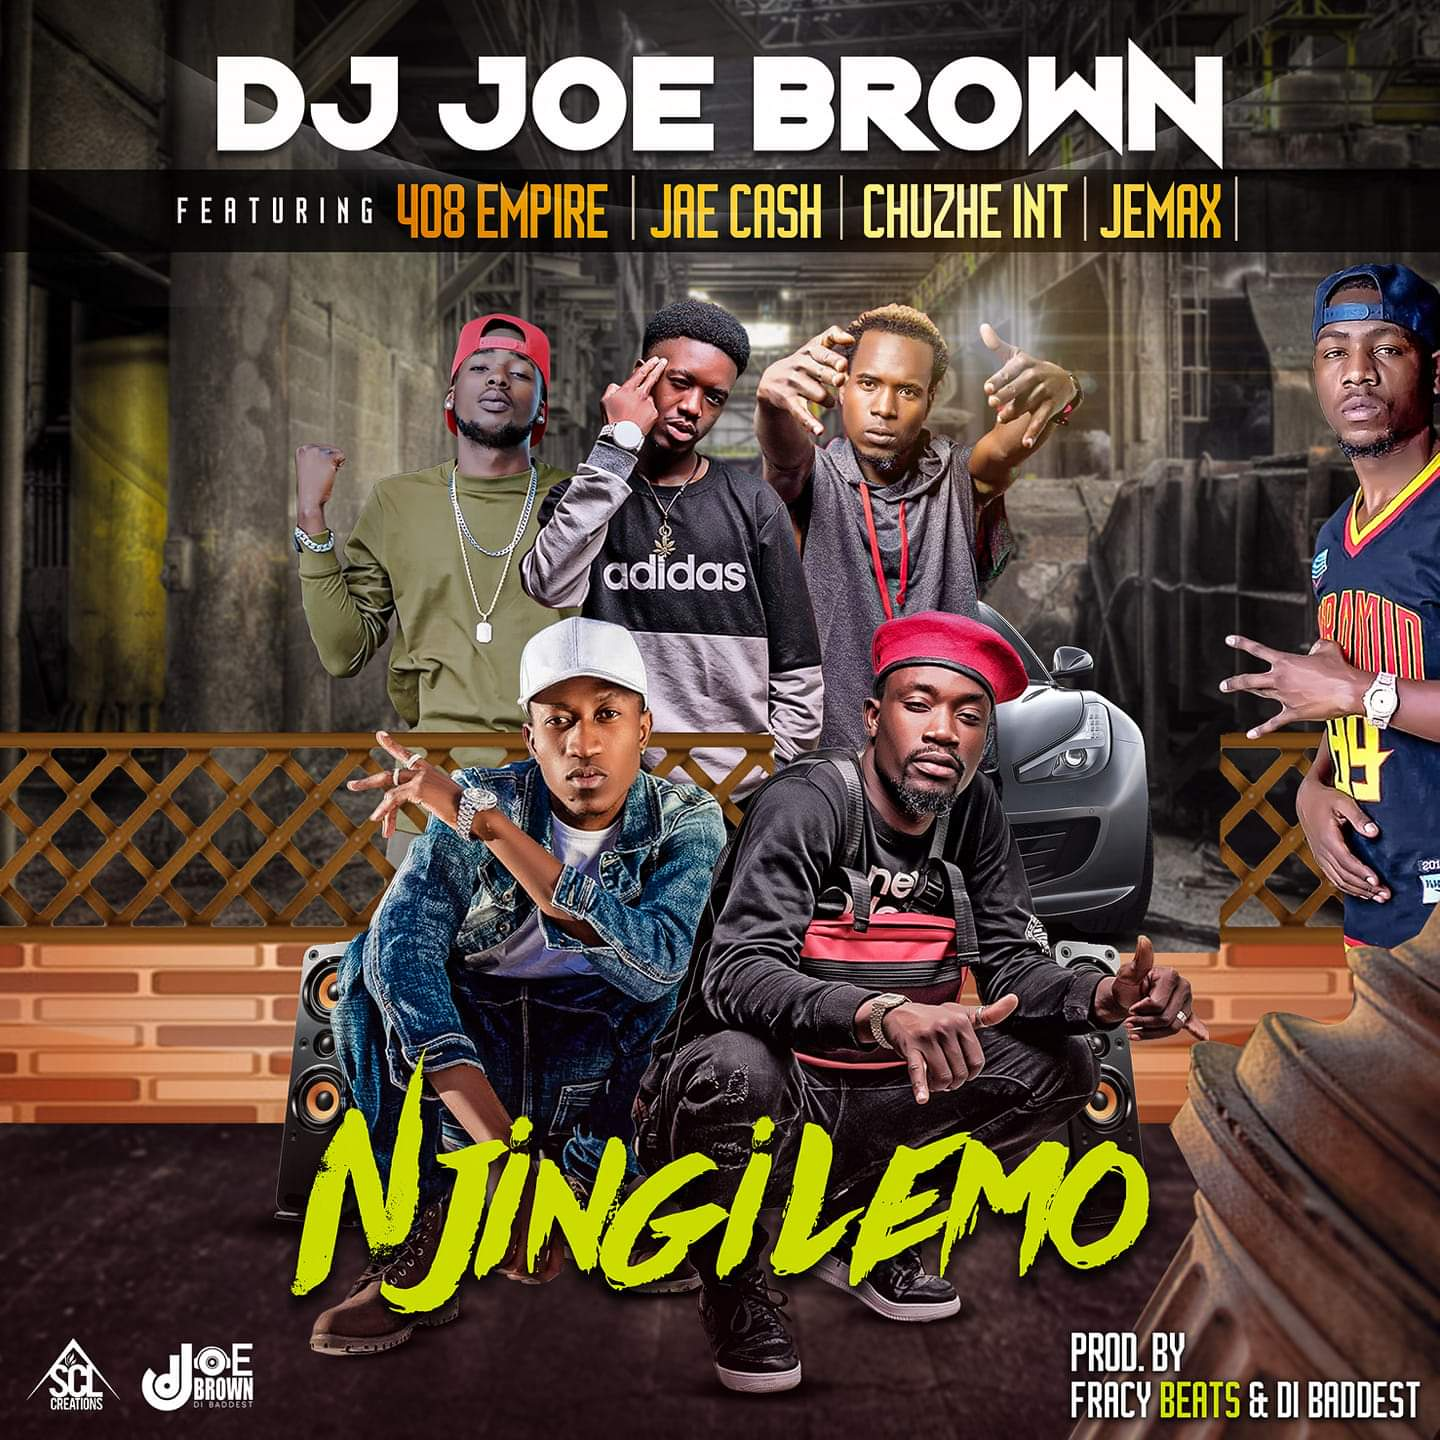 Dj Joe Brown Ft 408 Empire X Jae Cash X Jemax X Chuzhe Int-Njingilemo.